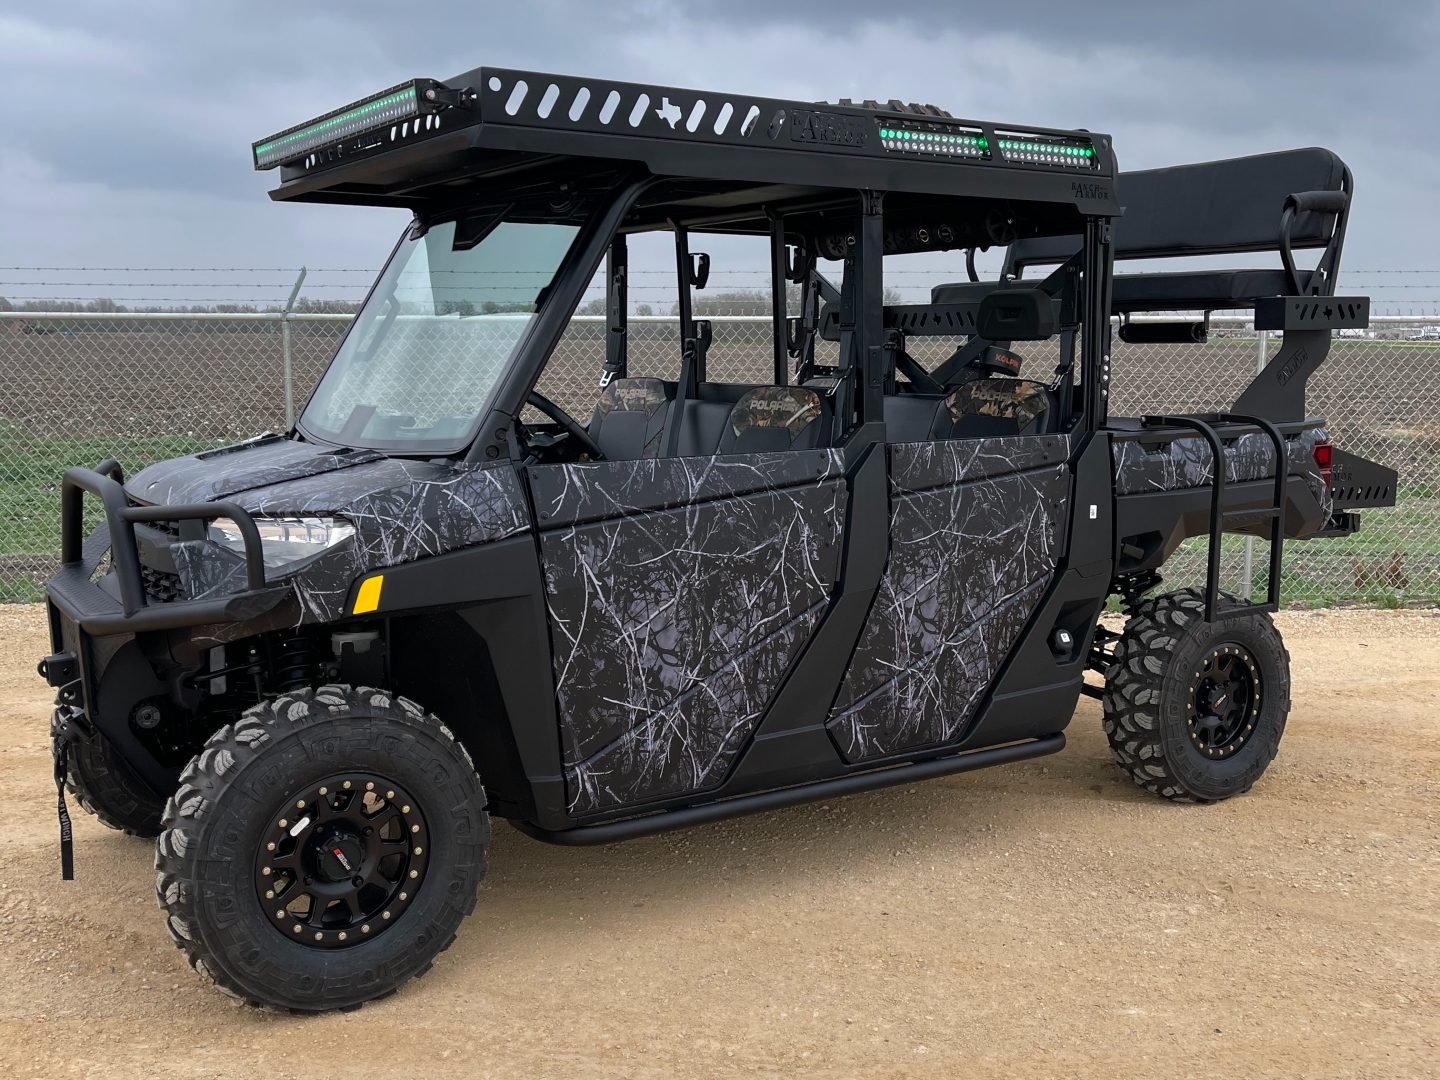 2021-polaris-ranger-1000-xp-crew-outfit-by-ranch-armor-with-elusive-top-bumper-high-seat-wheels-tires-bed-extension-camo-wrap-etc....jpg